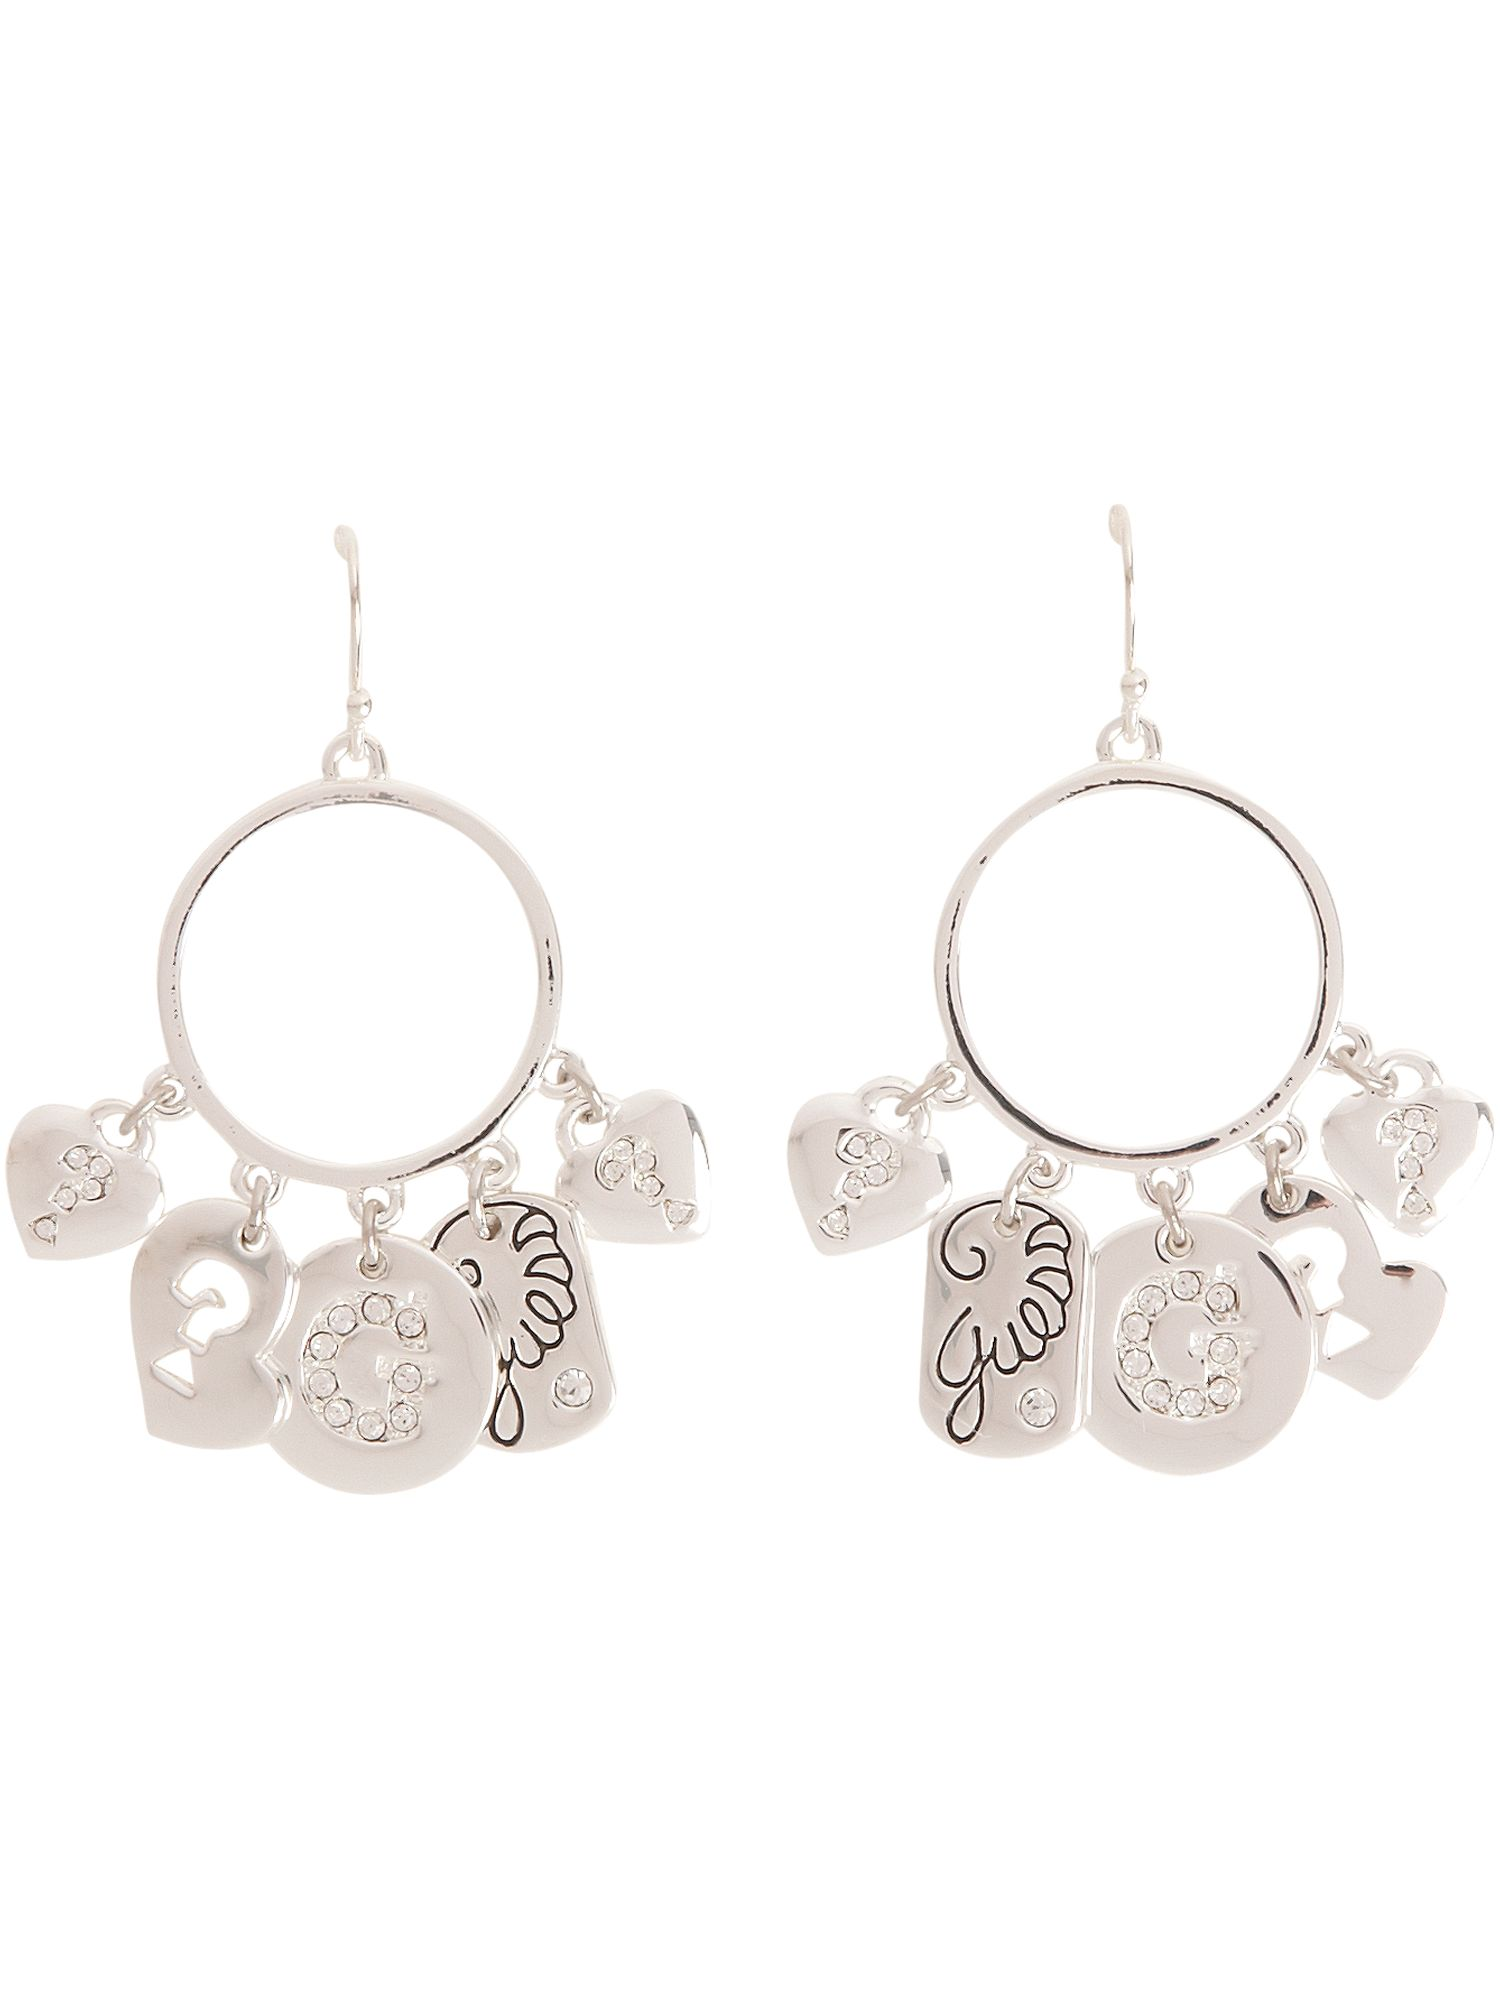 Guess Gypsy charm silver plated hoop earrings product image